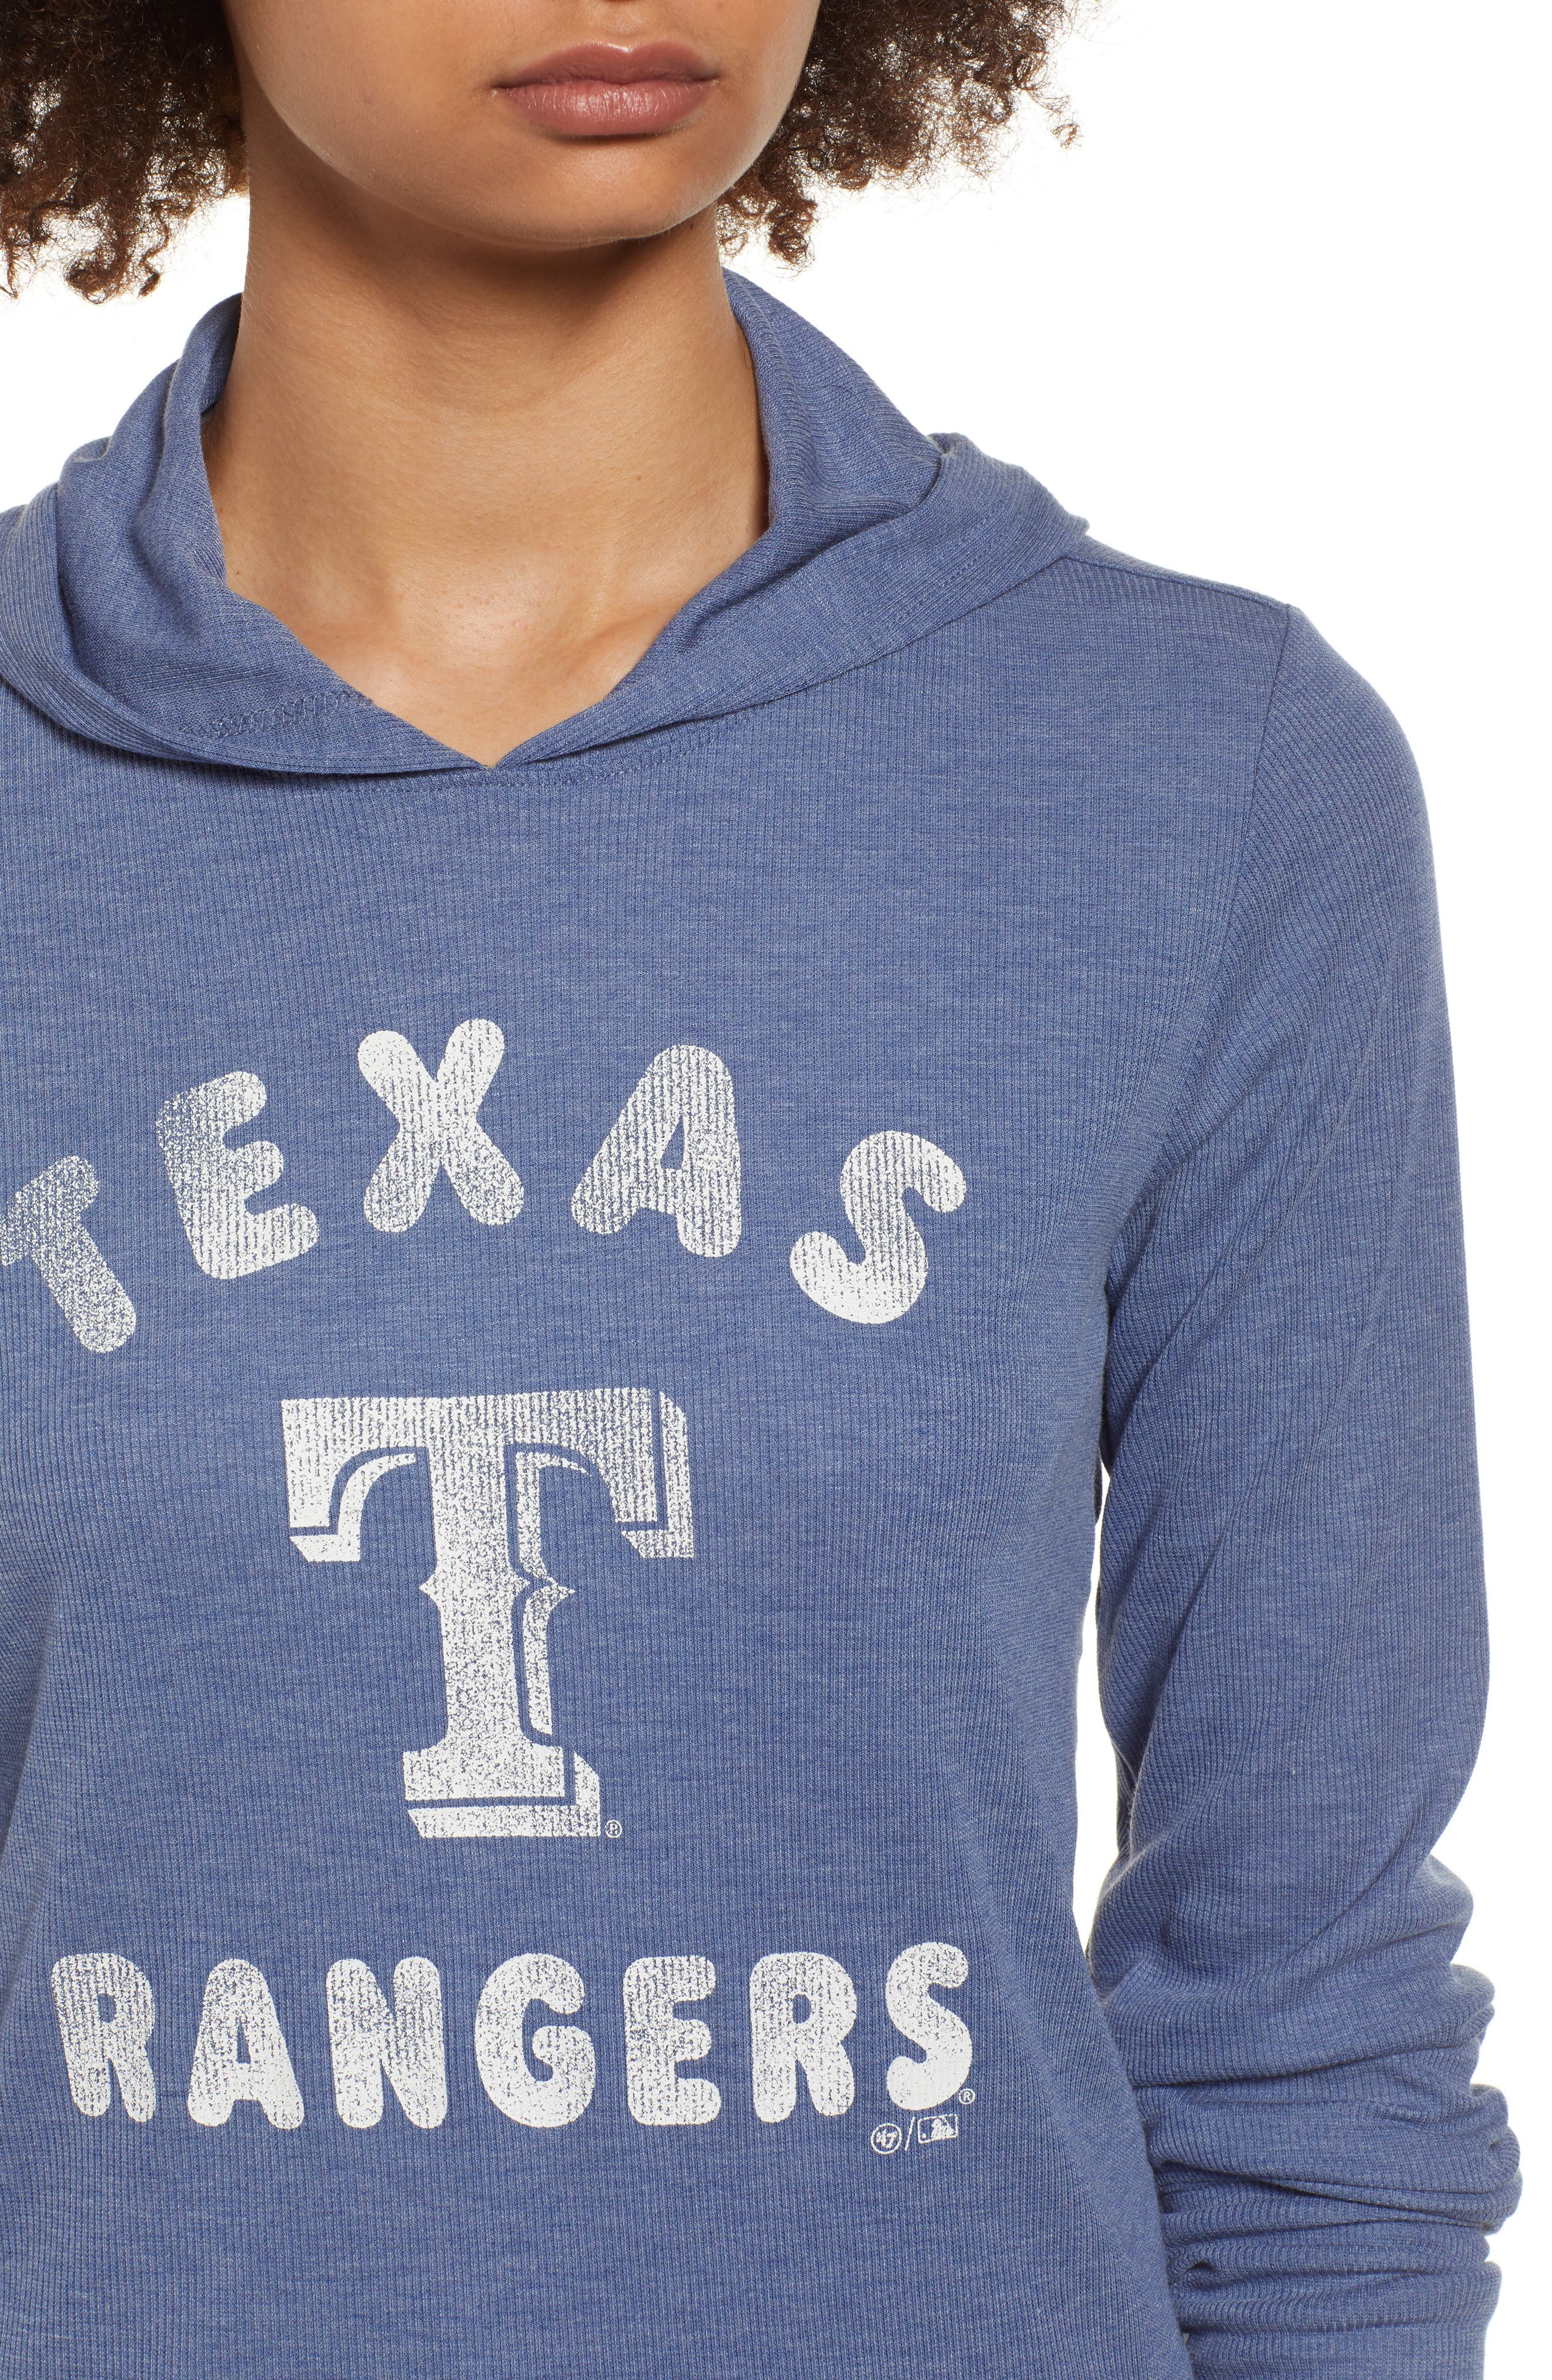 Campbell Texas Rangers Rib Knit Hooded Top,                             Alternate thumbnail 4, color,                             400